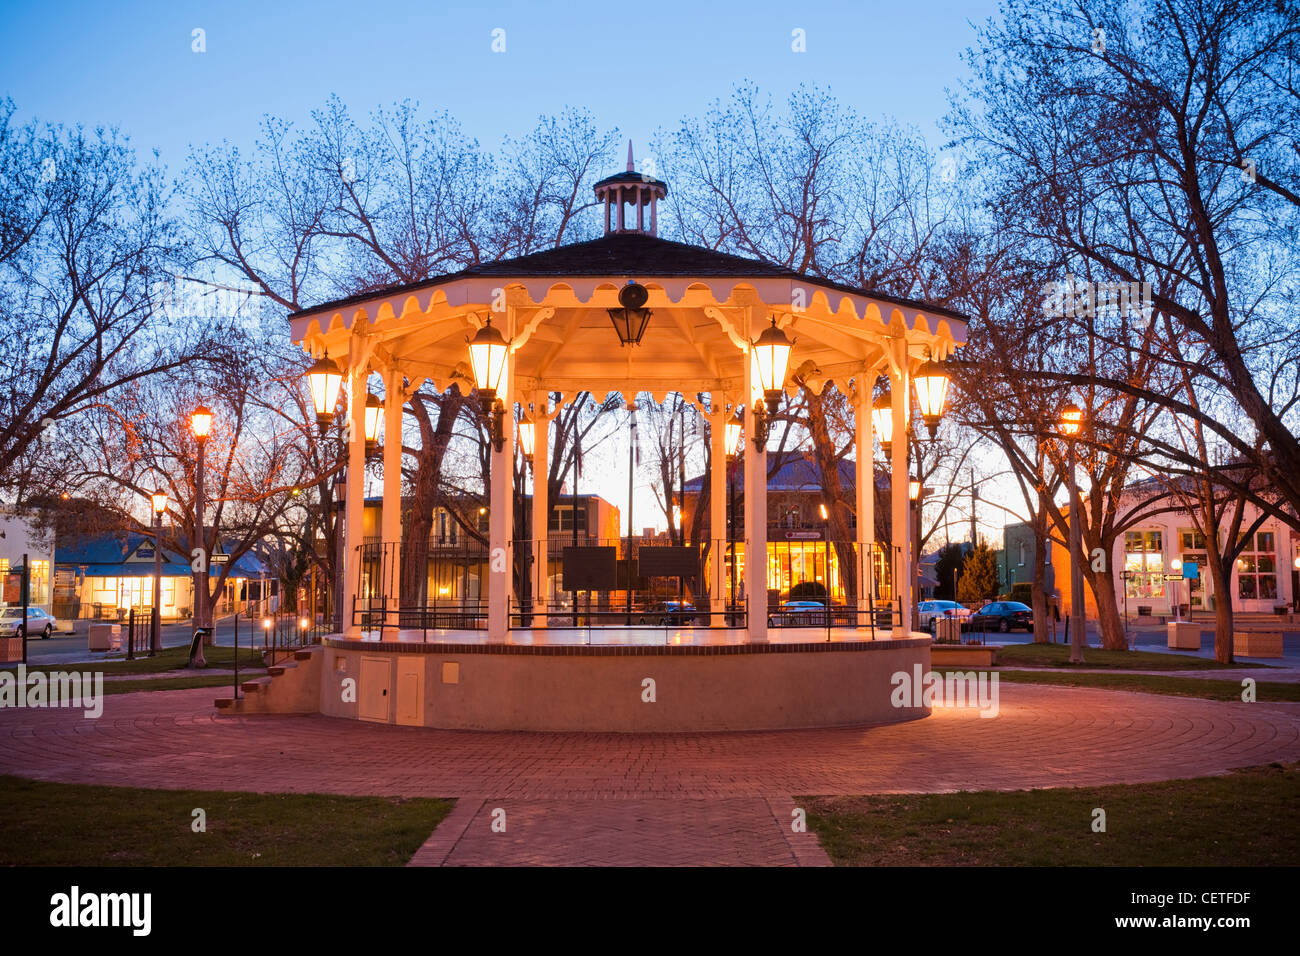 Old town plaza bandstand, Albuquerque - Stock Image